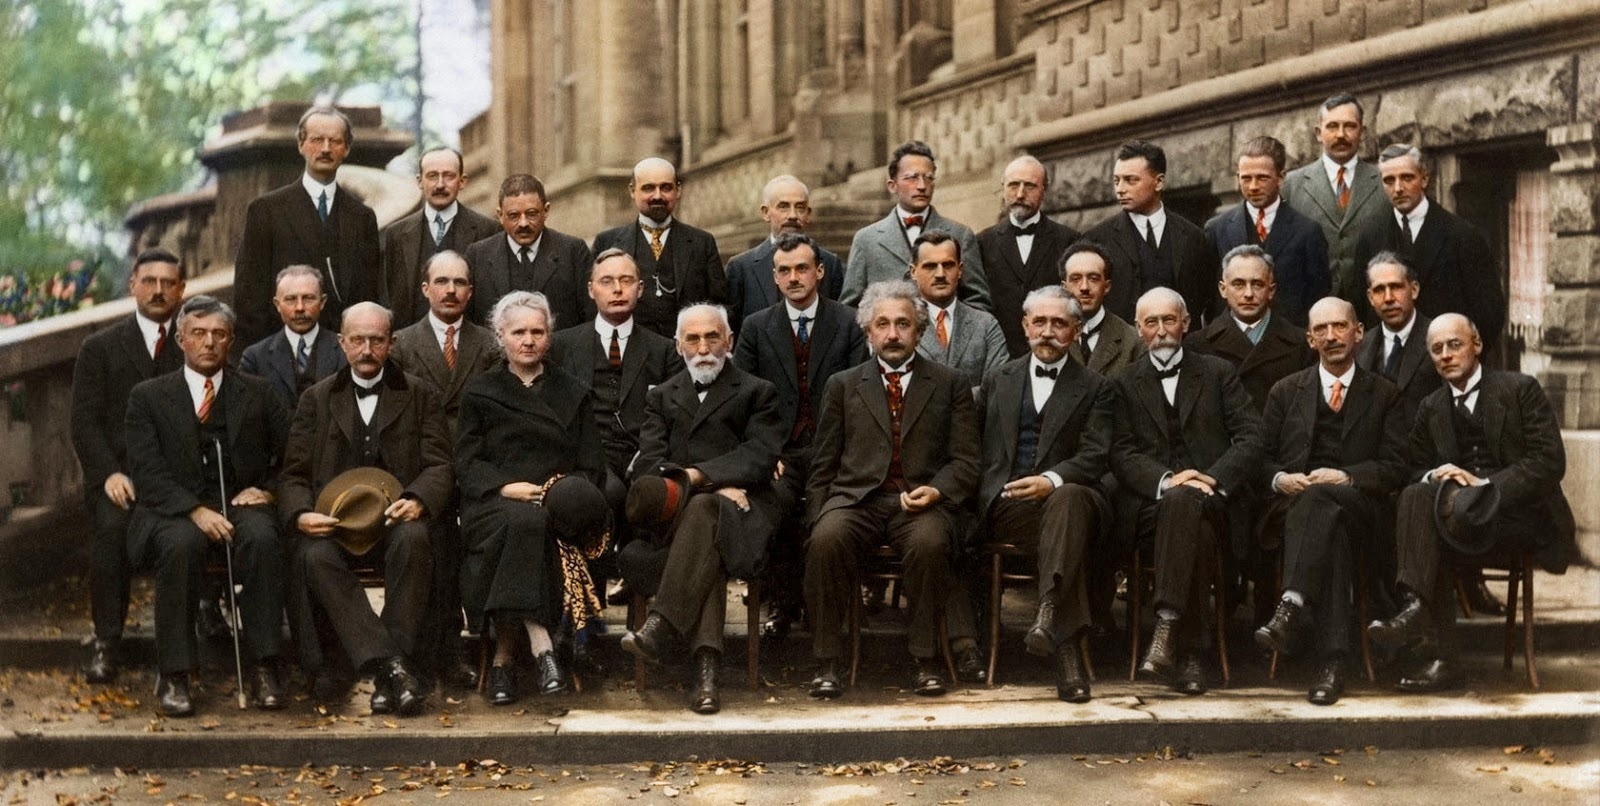 The Solvay Conference, Enstein and Marie Curie,1927